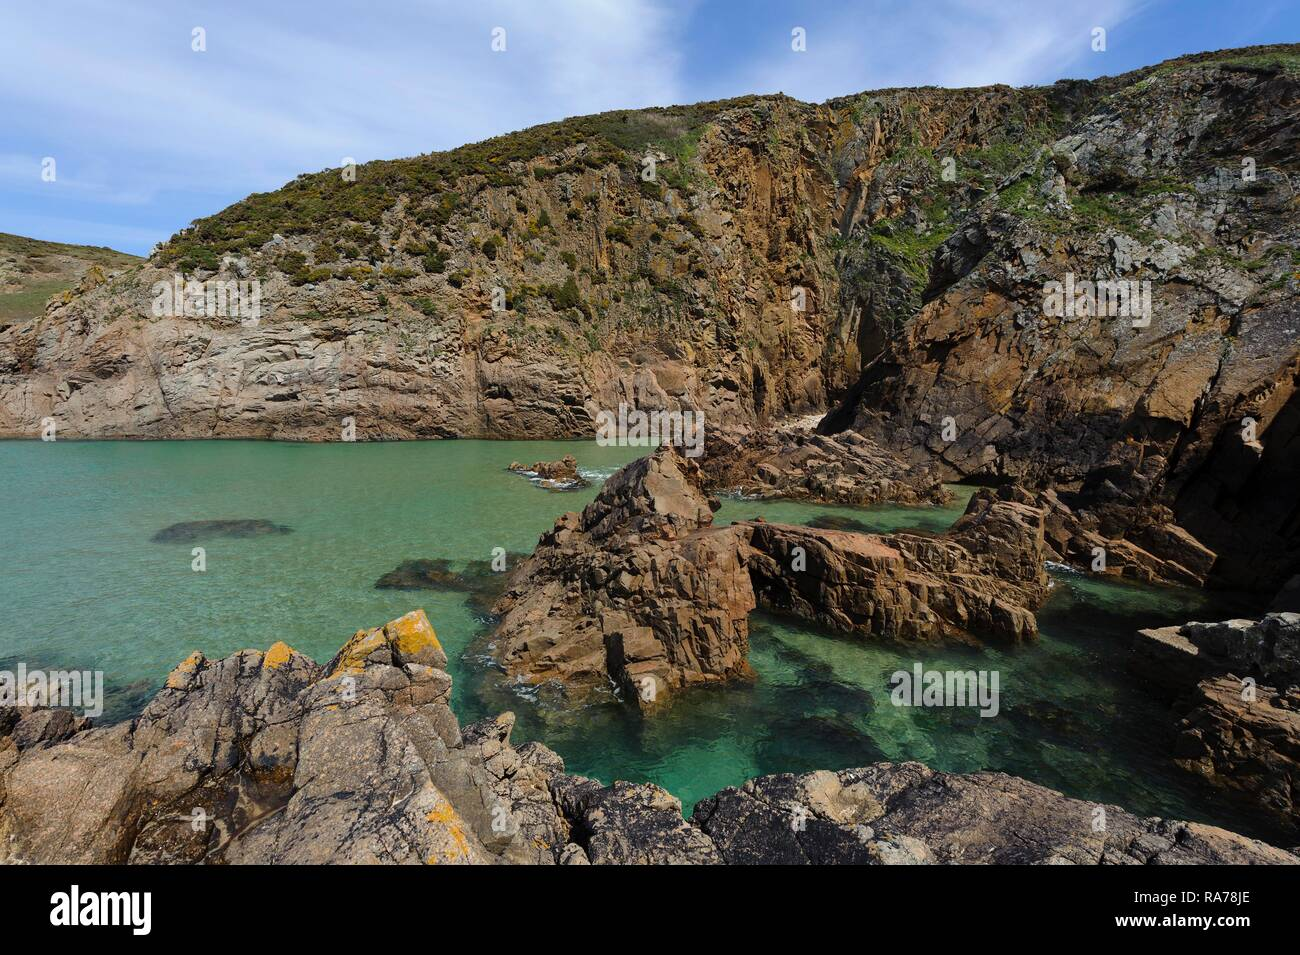 Plemont Bay in the northeast of the island of Jersey, Channel Islands - Stock Image